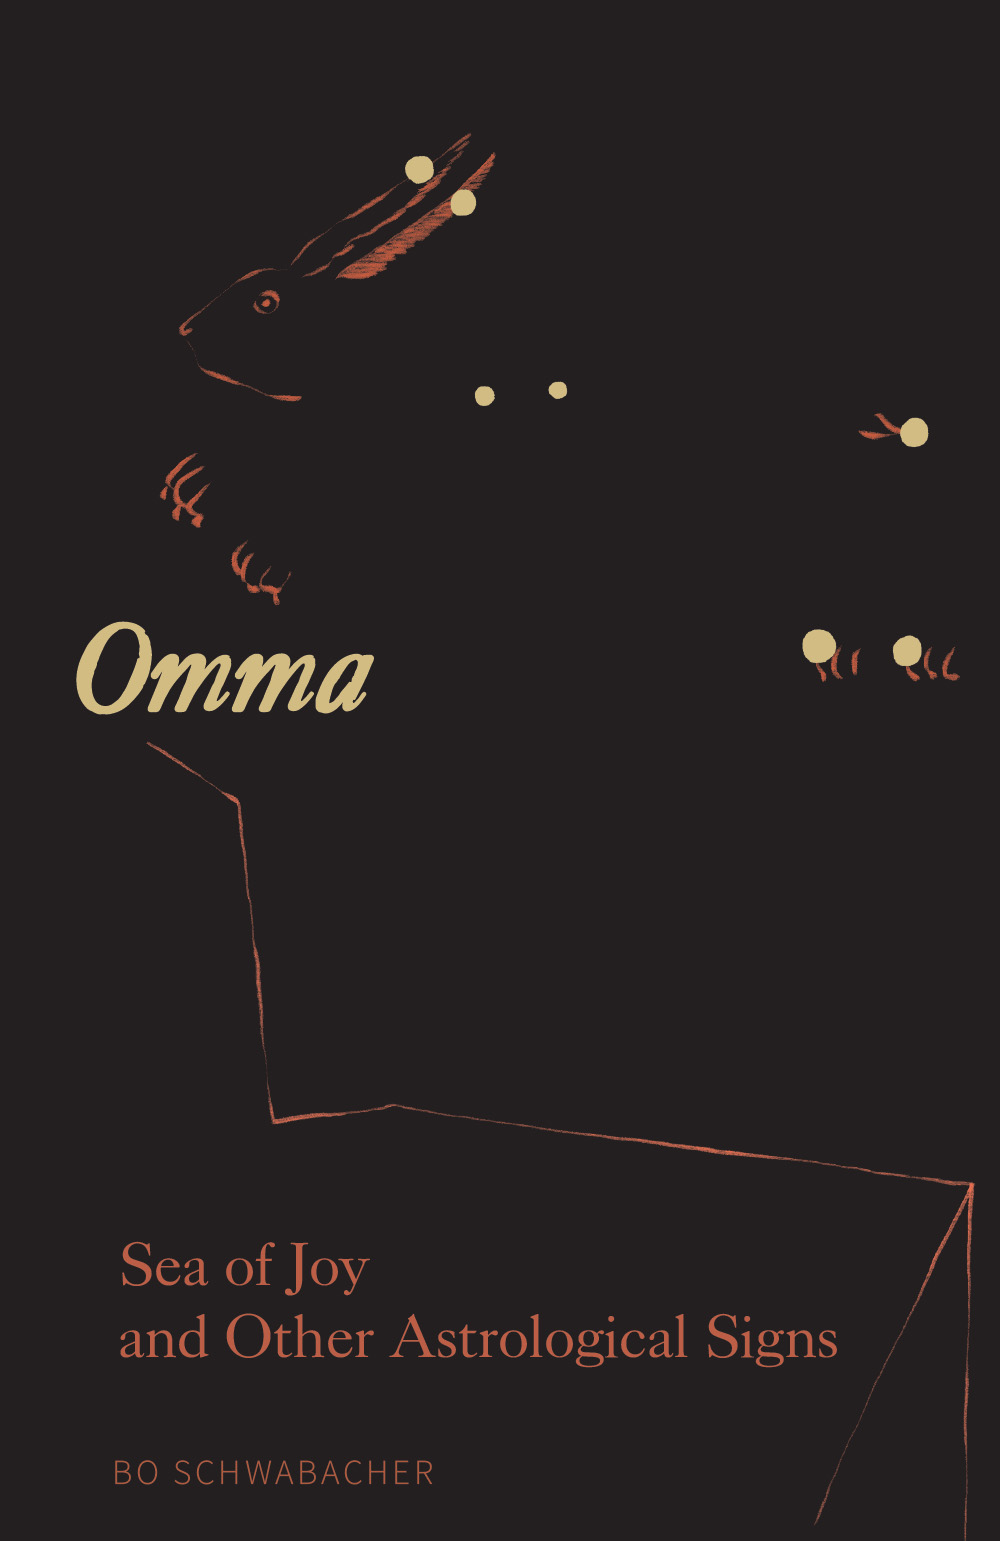 Omma, Sea of Joy and Other Astrological Signs book cover.